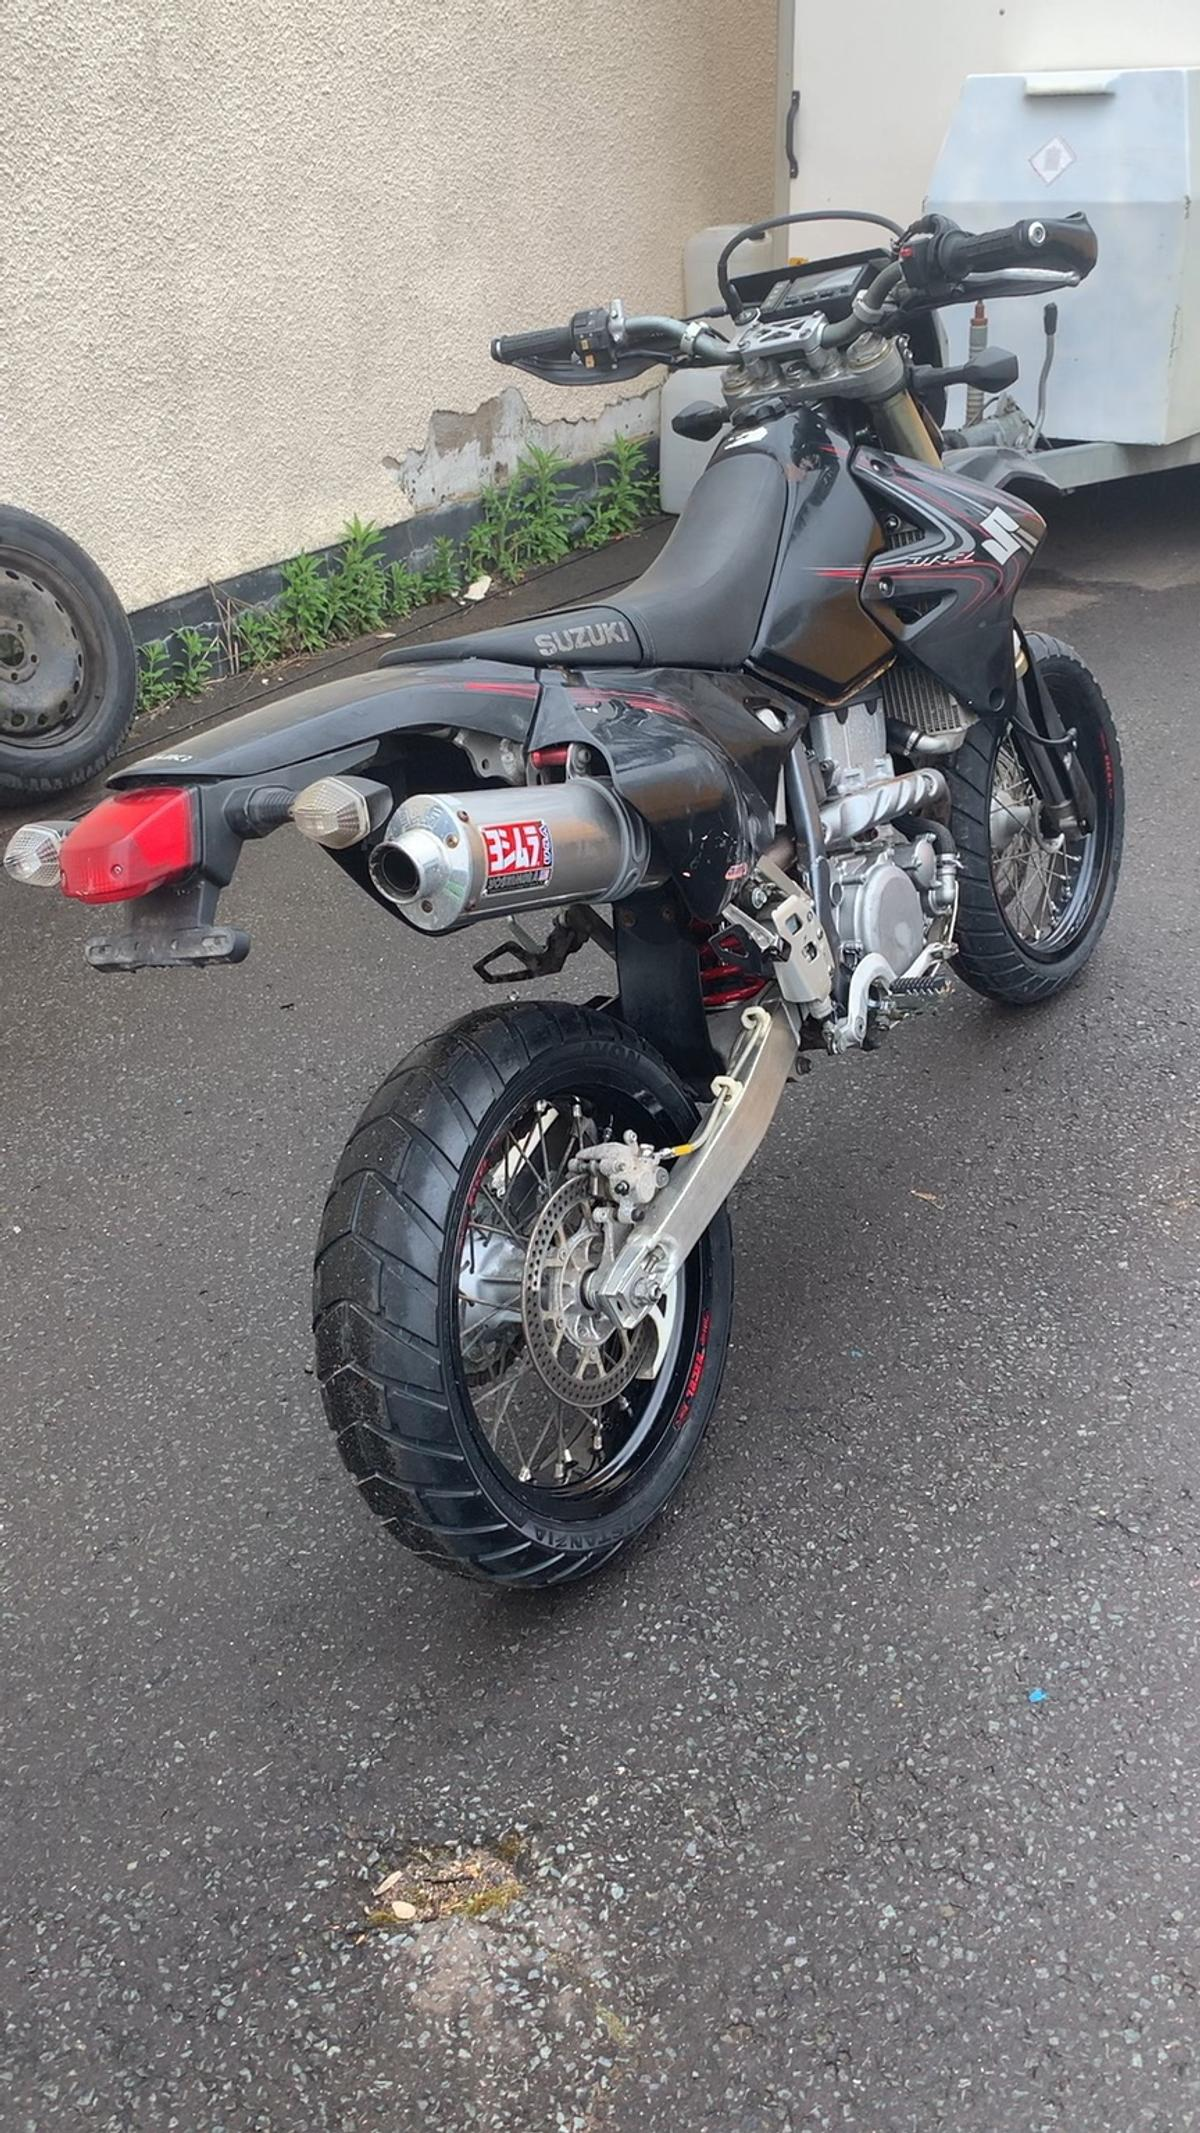 Suzuki Drz400SM in BS30 Warmley for £1,500 00 for sale - Shpock